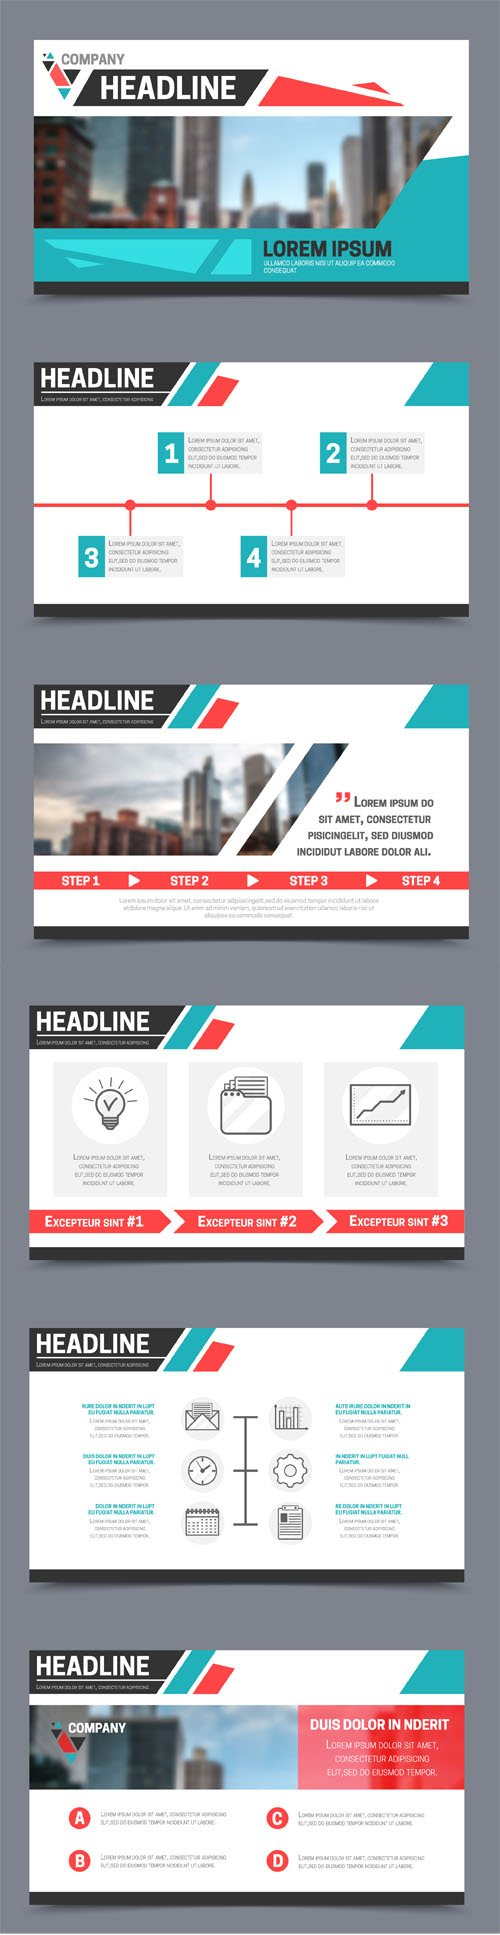 Presentation Templates Vector Set - 6 Slides